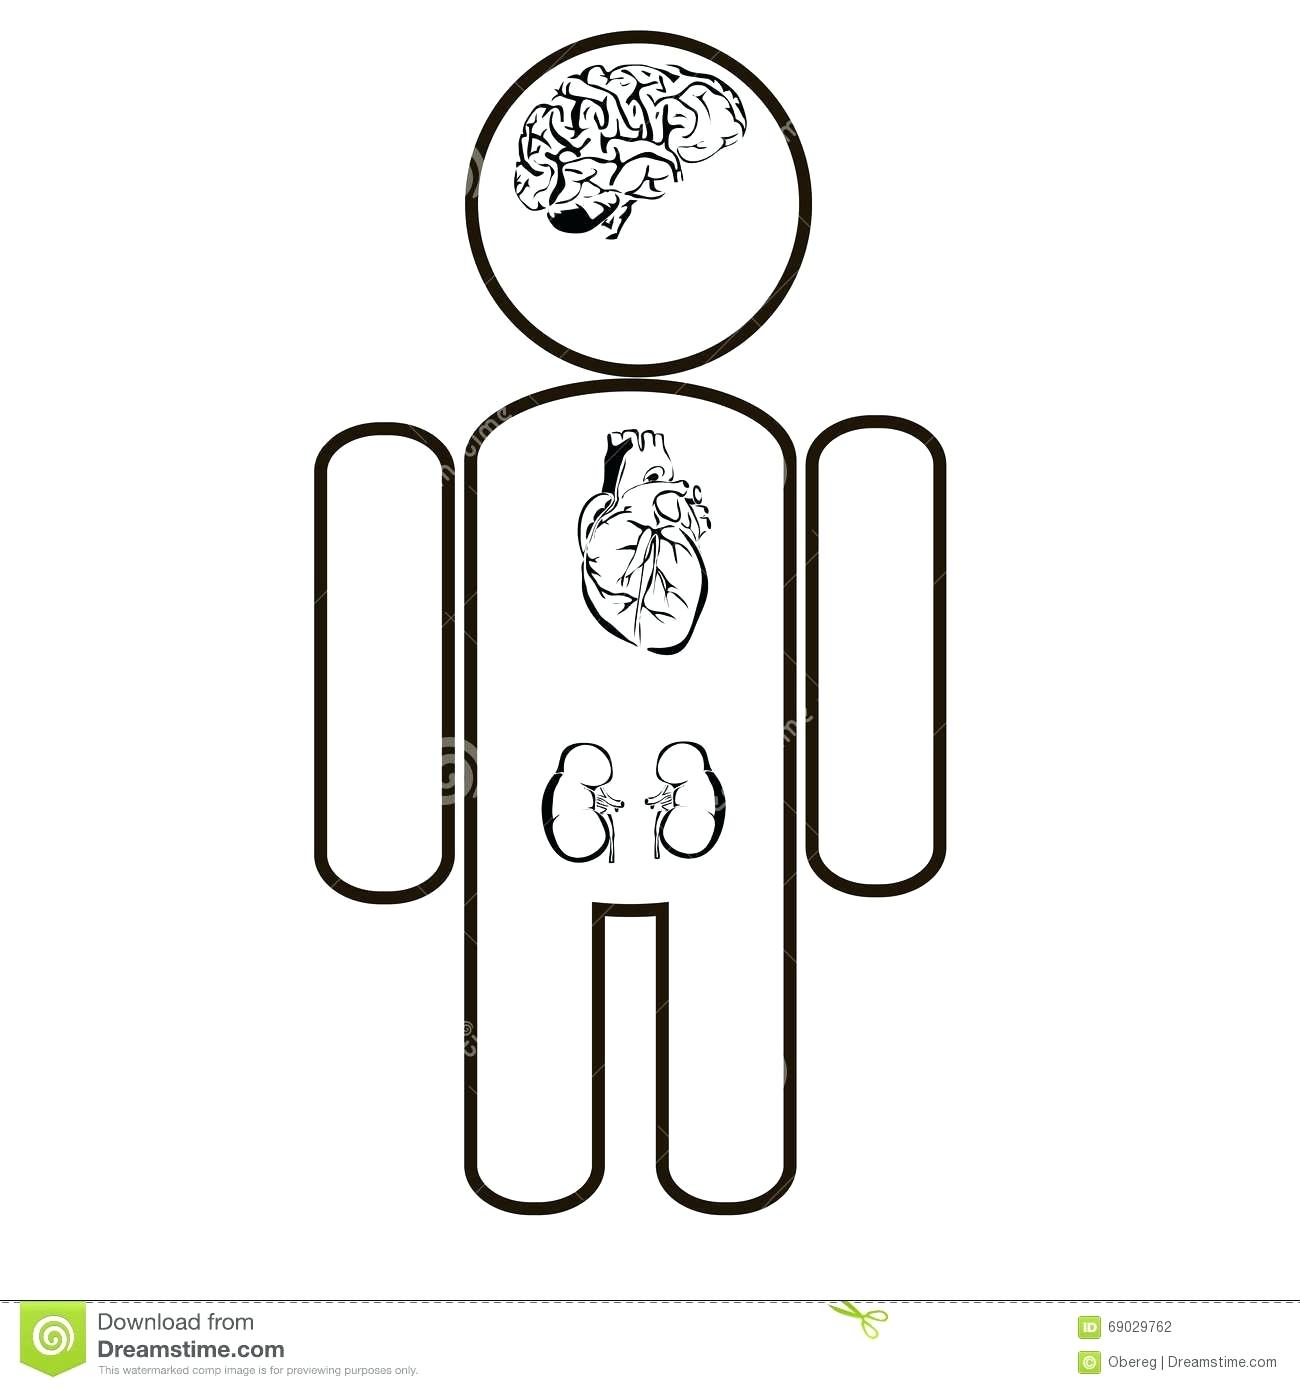 1300x1390 Coloring Pages Glamorous Human Outline. Human Hand Outline Image